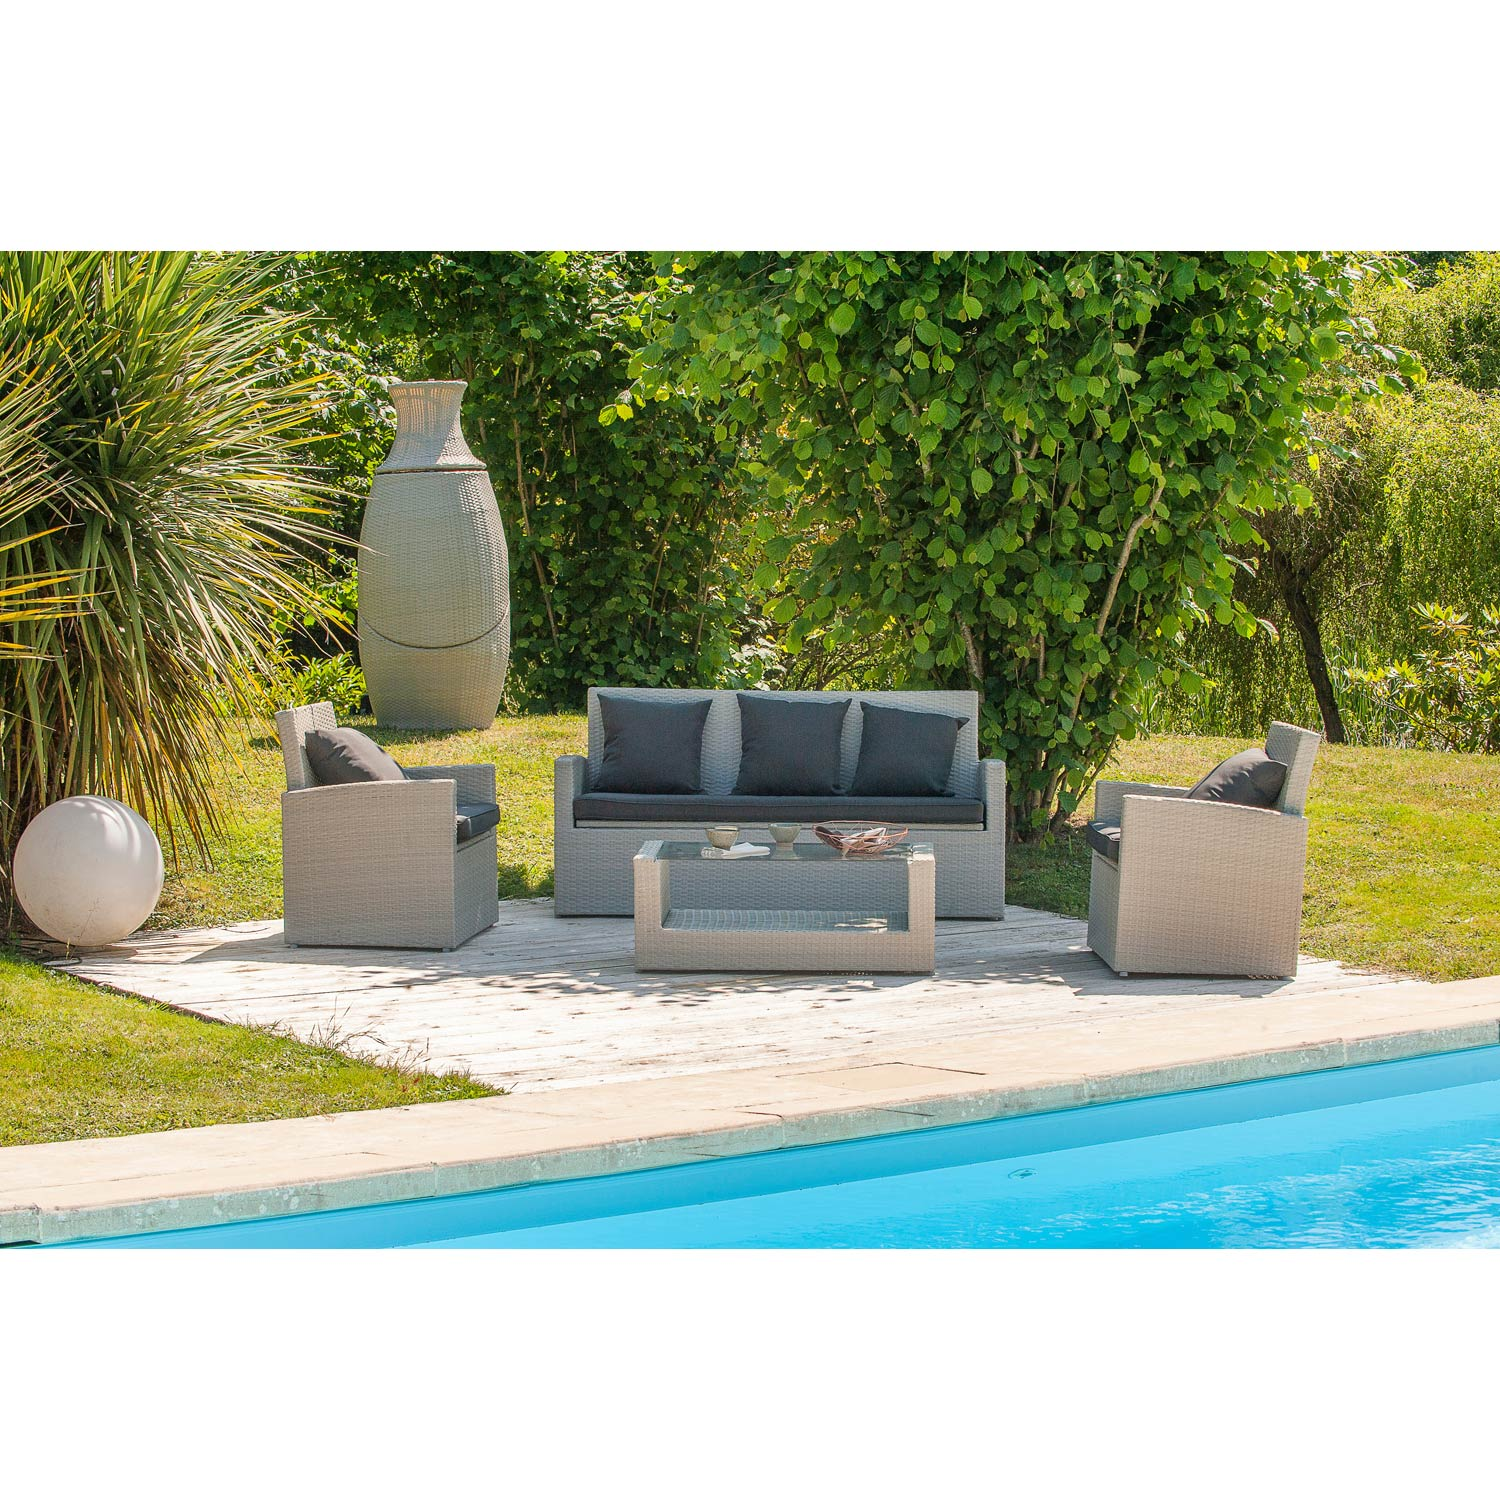 Promo Salon De Jardin Leroy Merlin Salon De Jardin Leroy Merlin Promotion Beautiful Table De